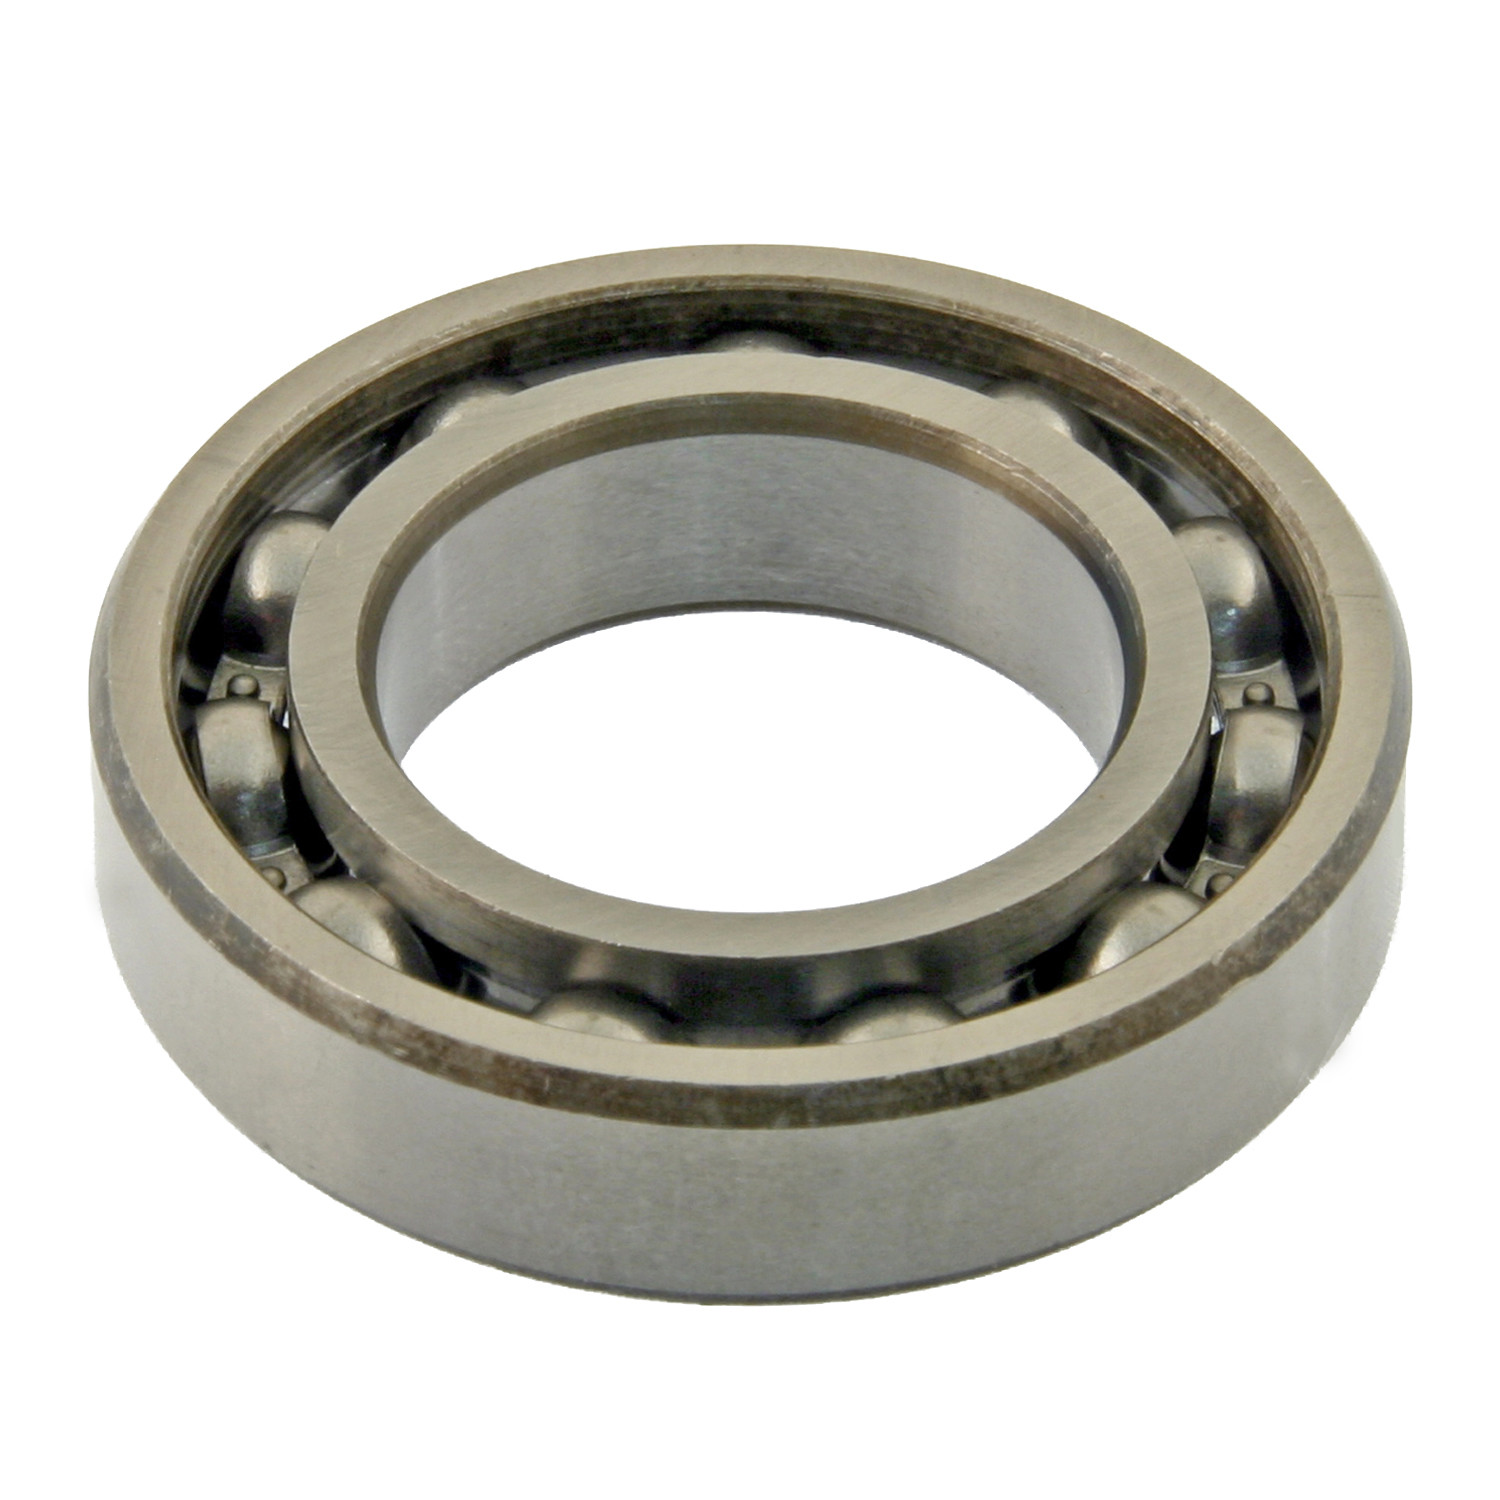 PRECISION AUTOMOTIVE INDUSTRIES - Automatic Transmission Extension Housing Bearing - PAU 107